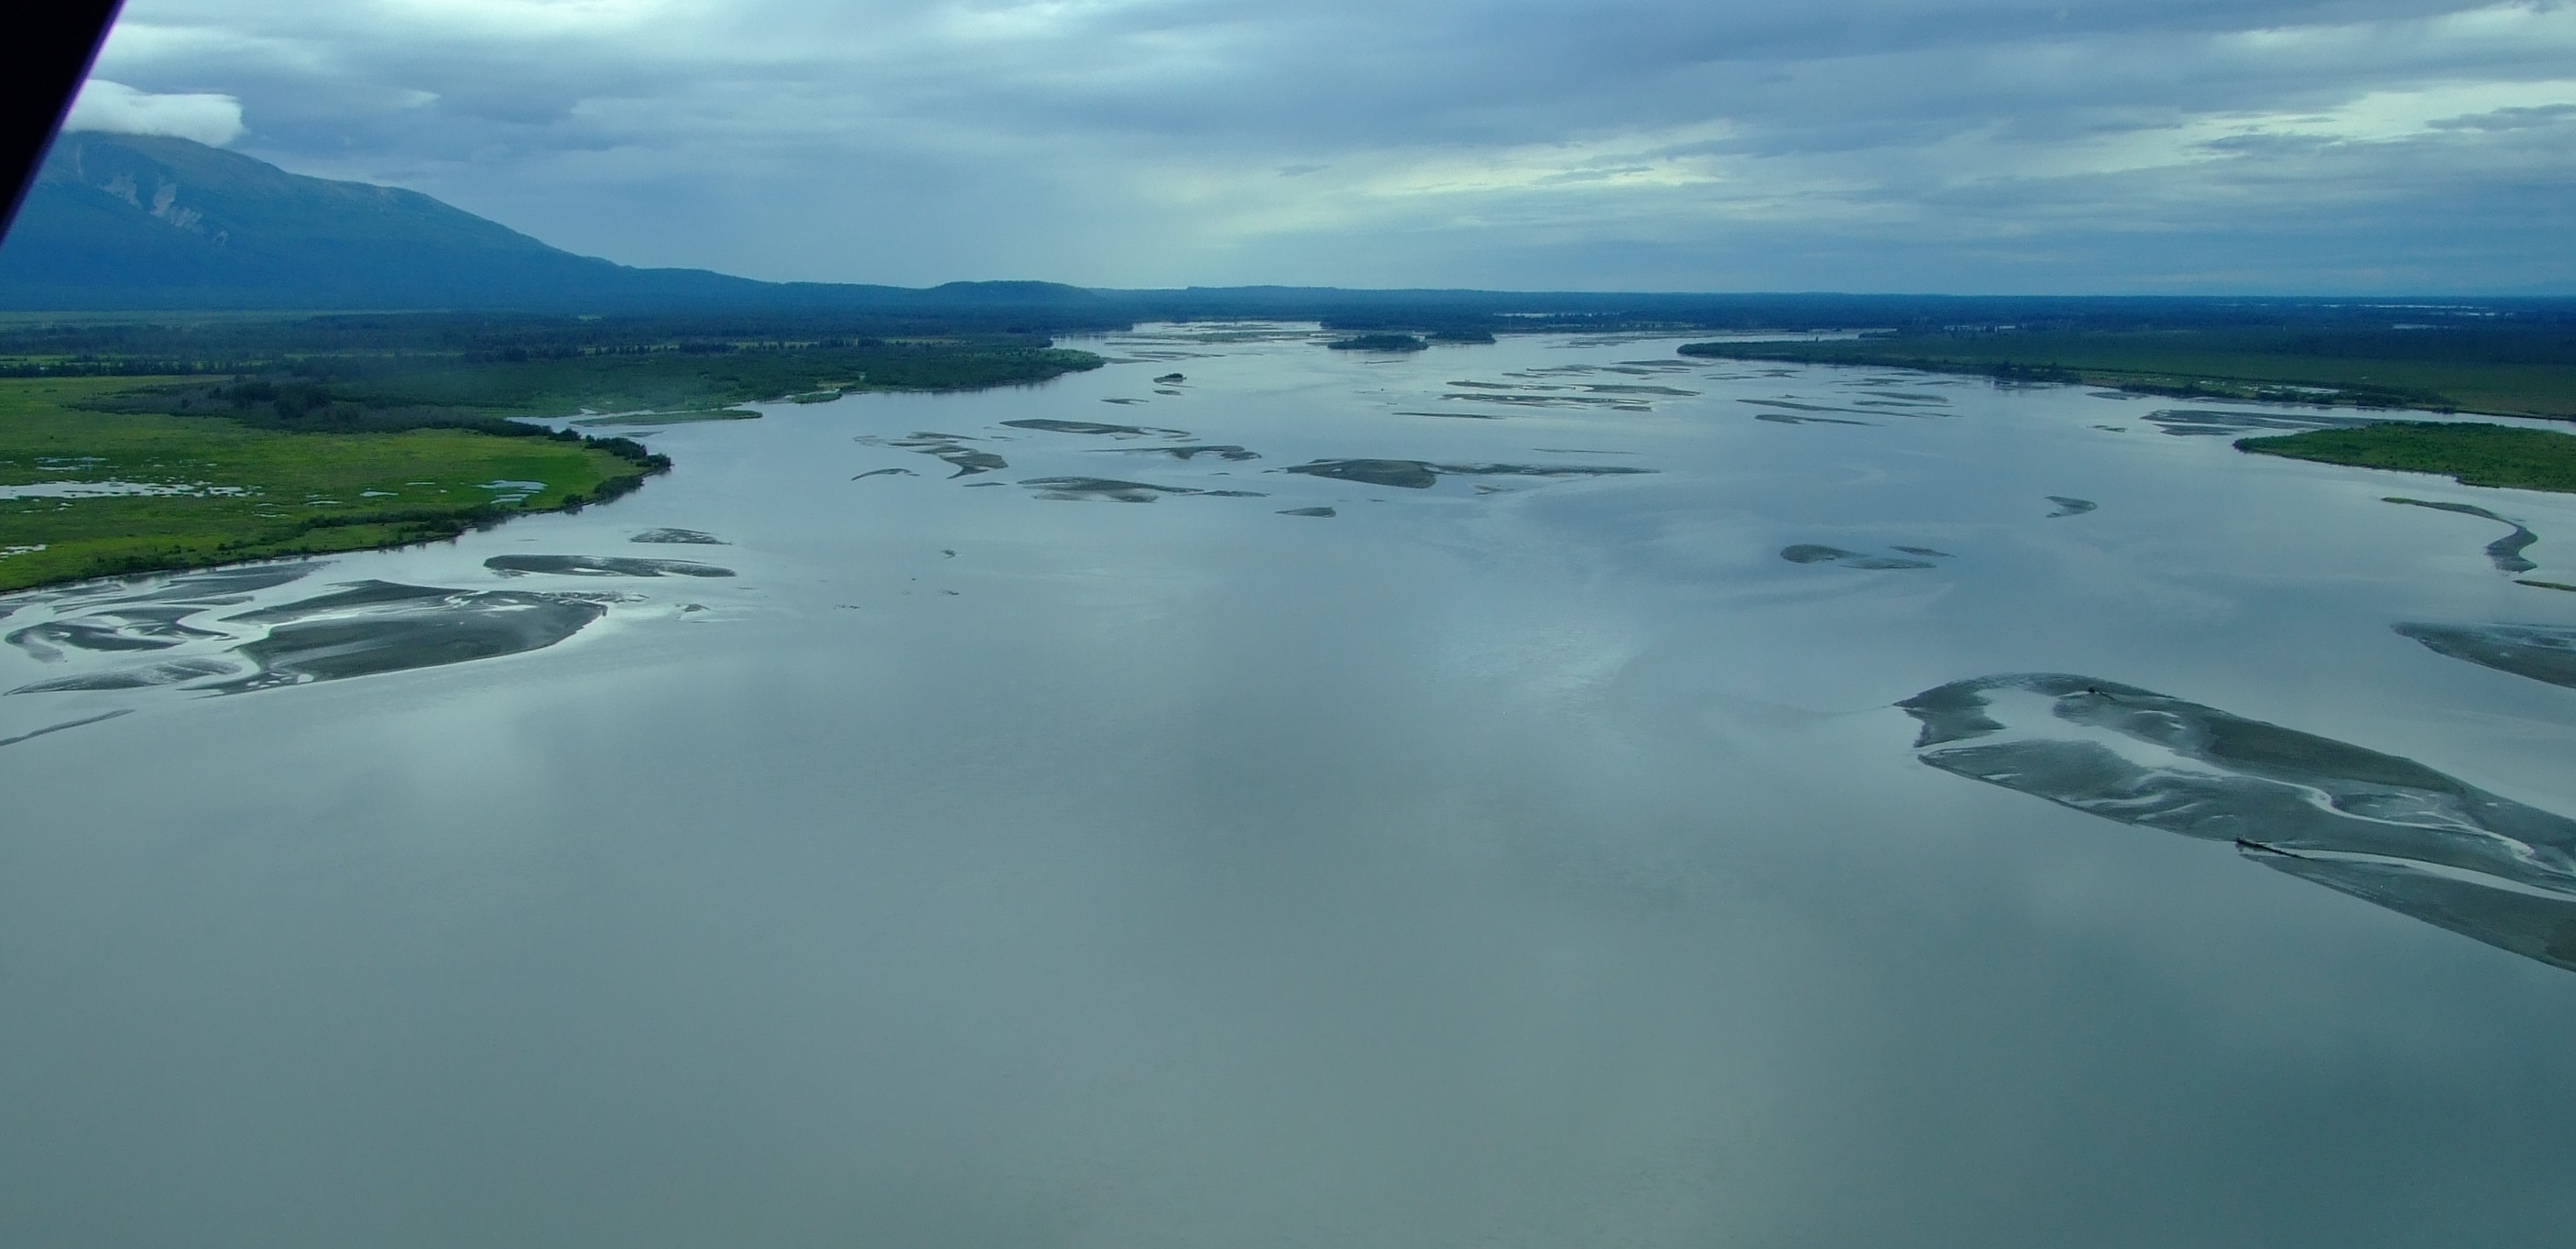 Looking upstream from the outflow of the mighty Susitna River as we continued flying west.